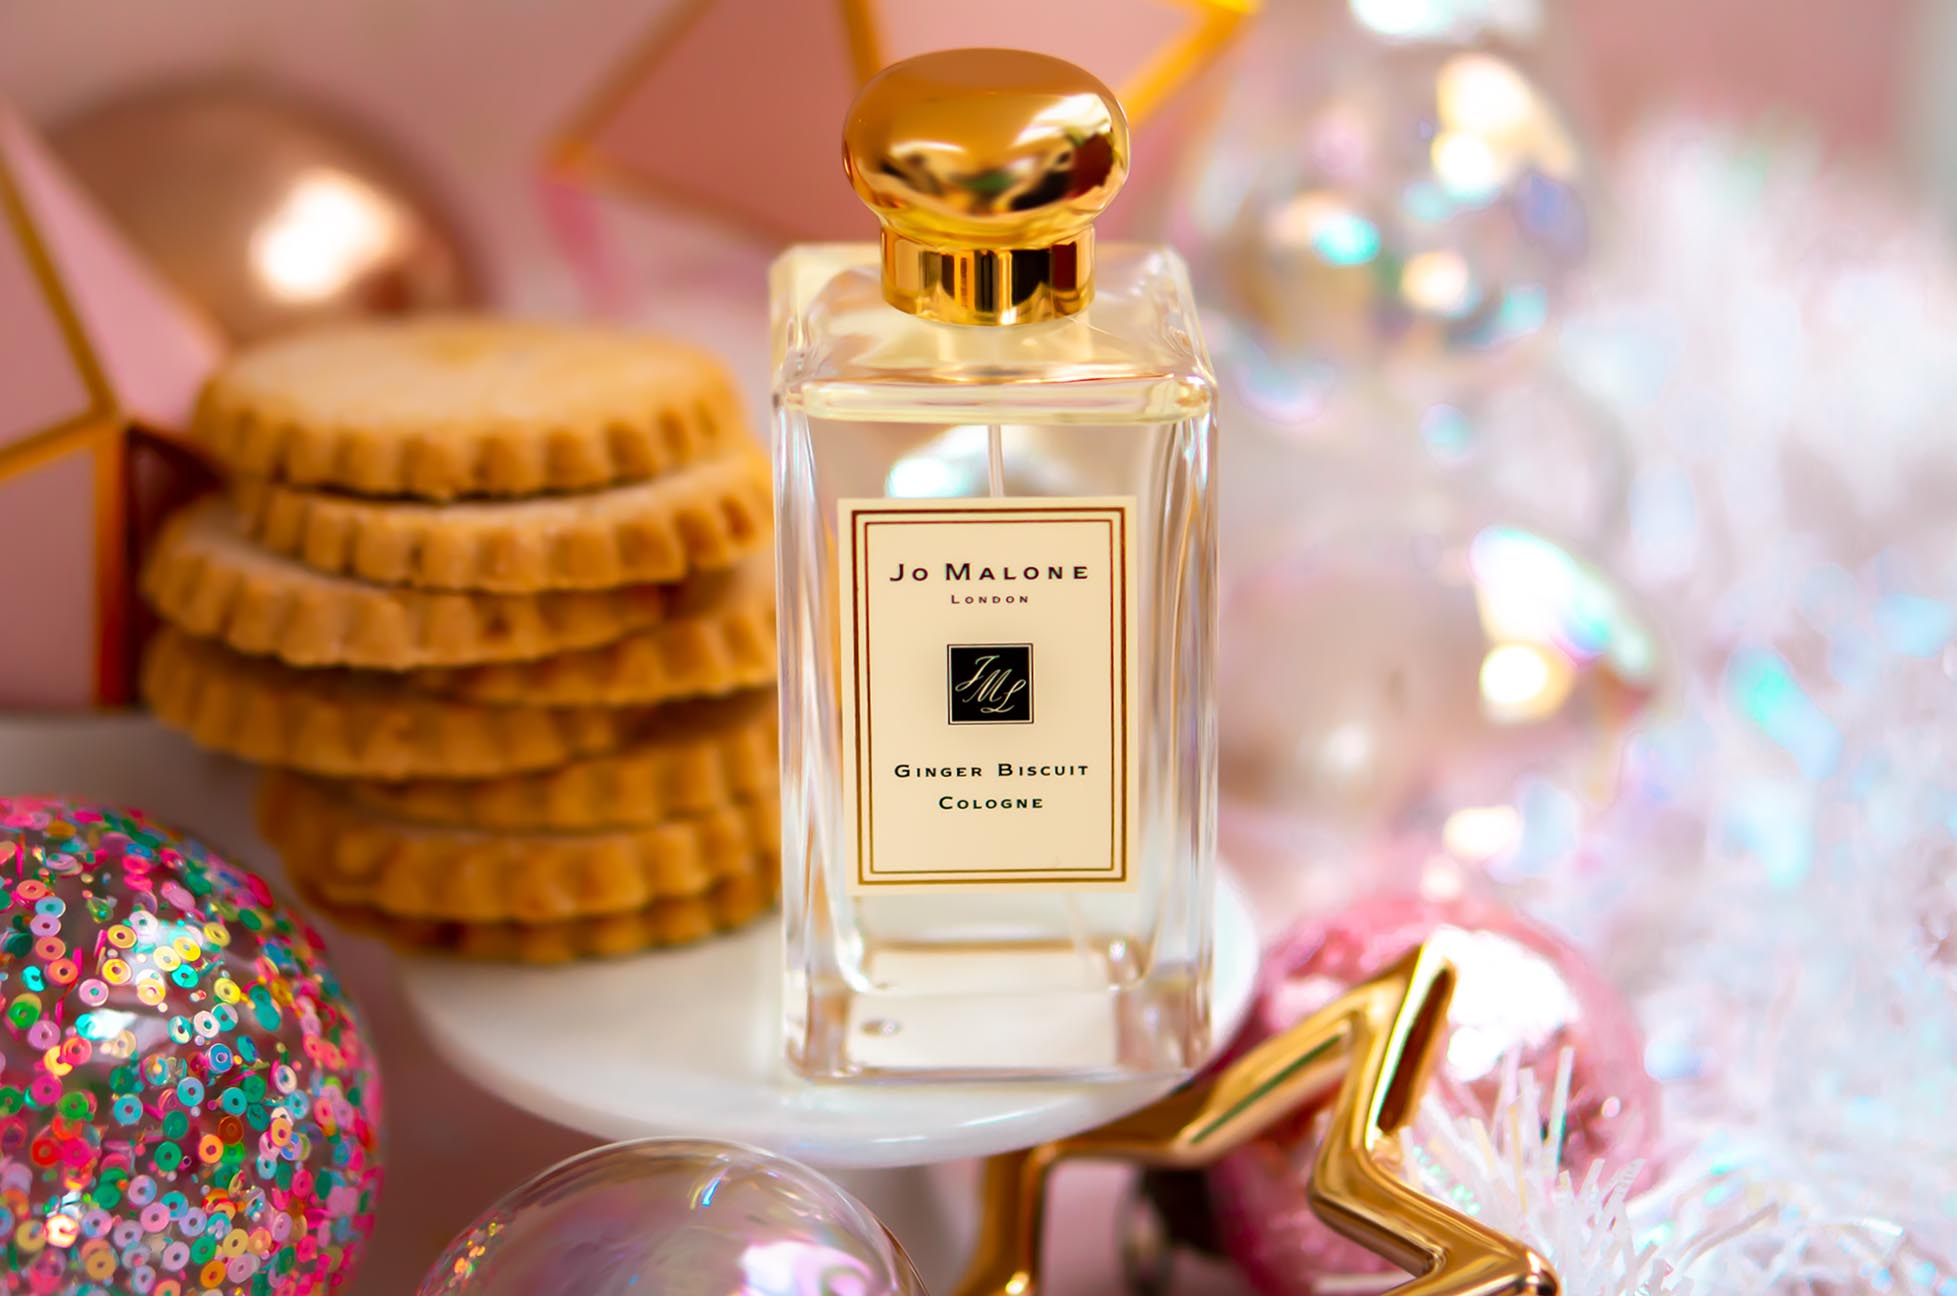 Jo Malone London Ginger Biscuit Cologne perfume Parfüm fragrance парфюм